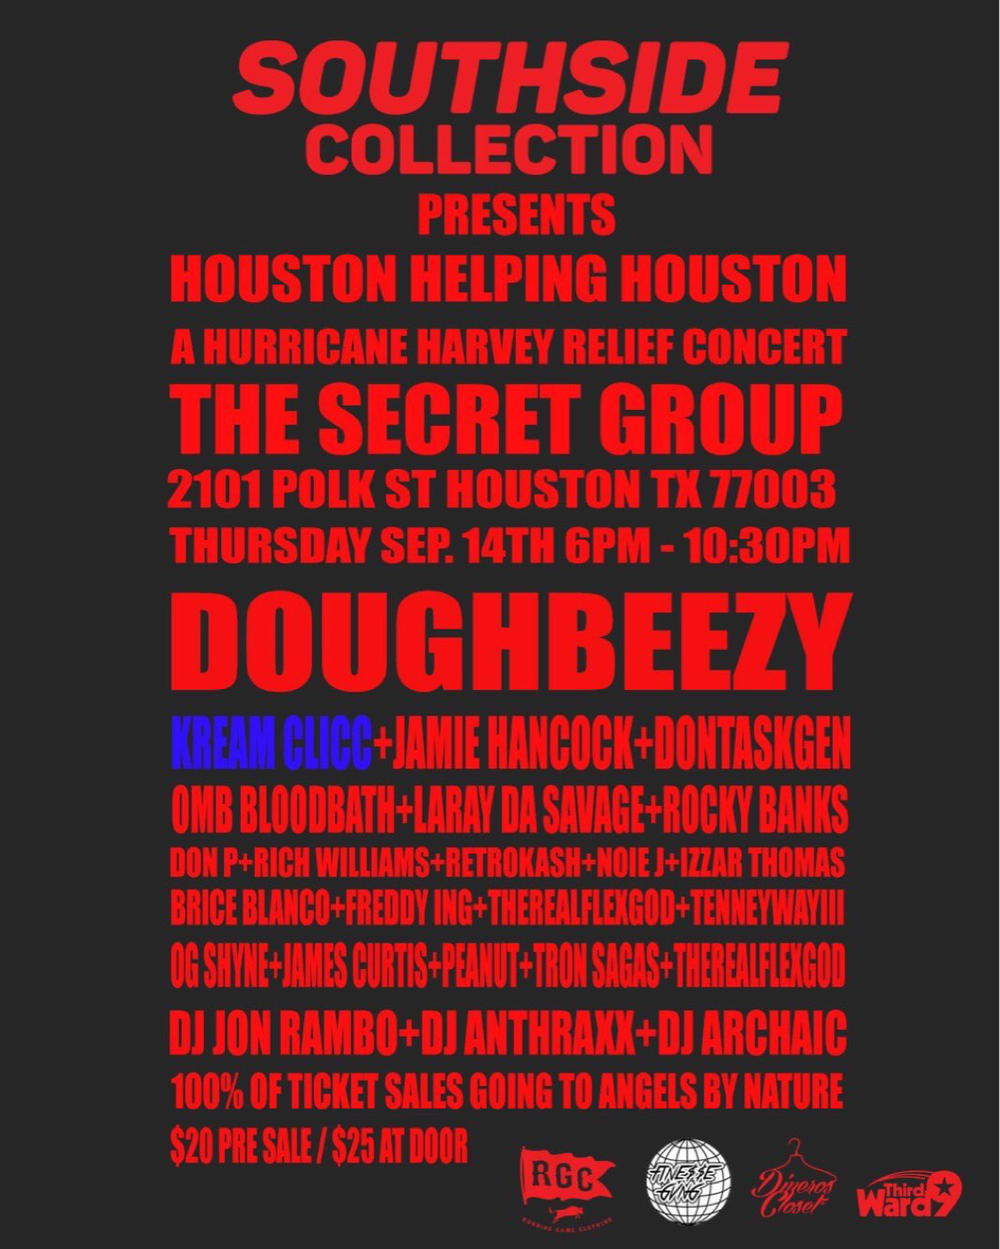 Southside Collection presents Houston Helping Houston: A Hurricane Harvey Relief Concert. Doors open at 6pm. Tickets are $20 presale and $25 at the door. 100% of tickets sales are going to Angels By Nature  Date and Time:  Thursday September 14, 2017  6pm - 10:30pm  Location:  The Secret Group  2101 Polk St  Houston, TX 77003